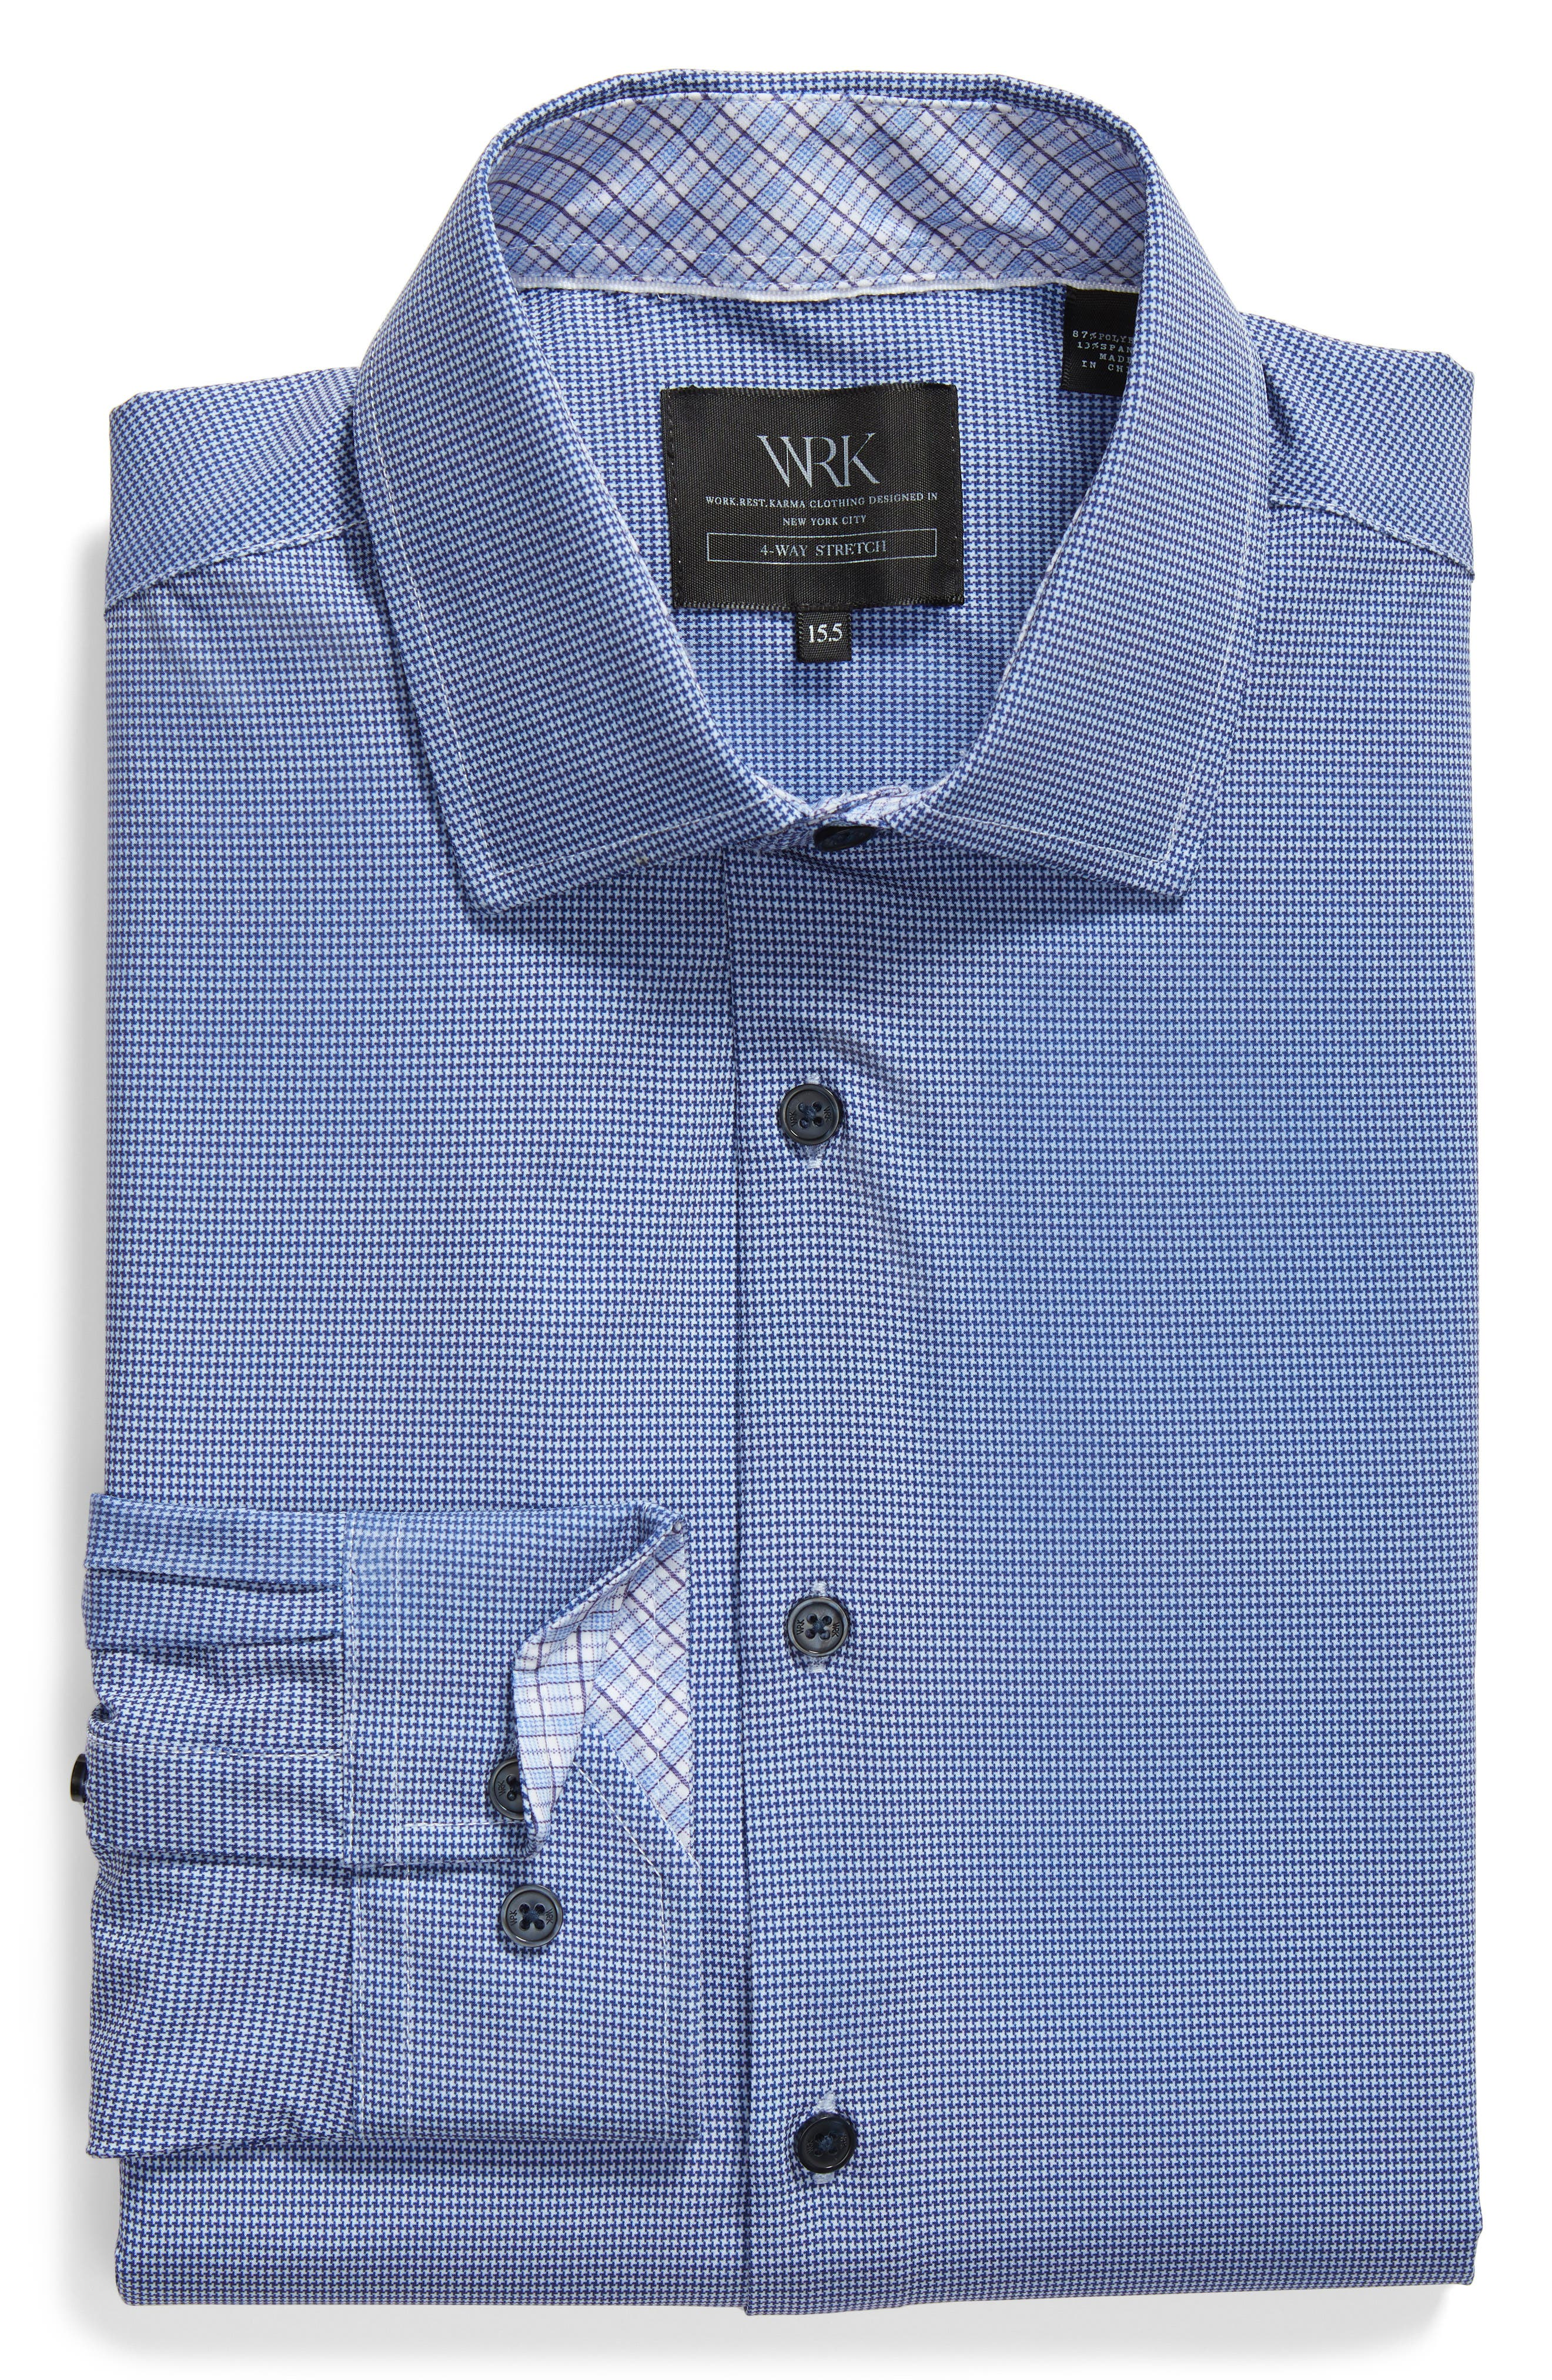 Trim Fit Houndstooth 4-Way Stretch Dress Shirt,                             Alternate thumbnail 5, color,                             NAVY